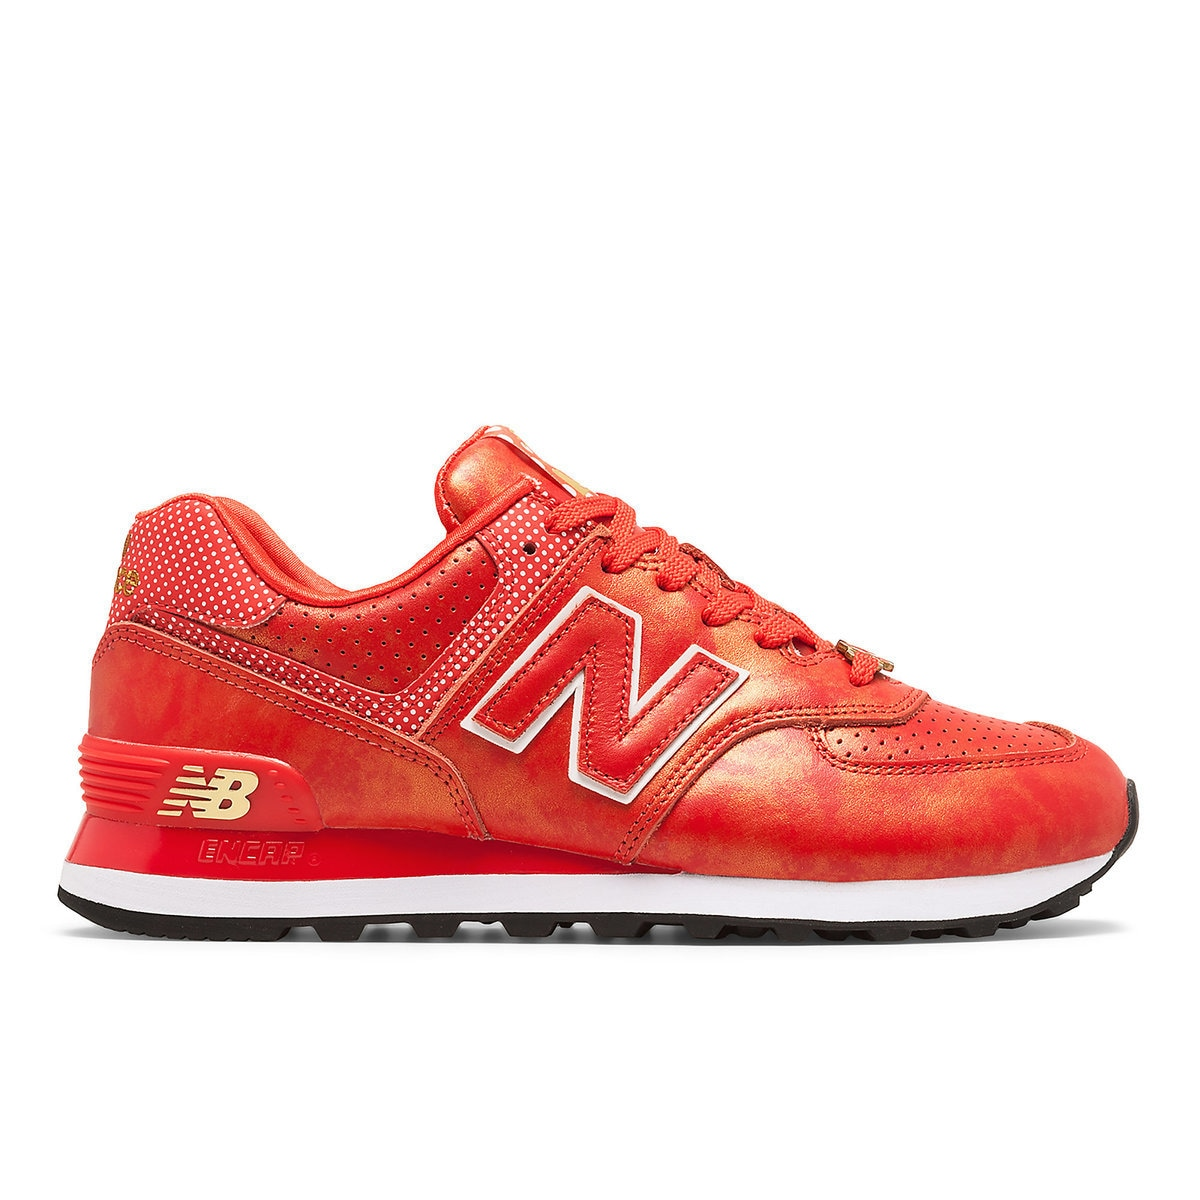 Cheap deal New Balance 574 Sneakers Grey Red 0xA6DVLsl2iW Womens Shoes